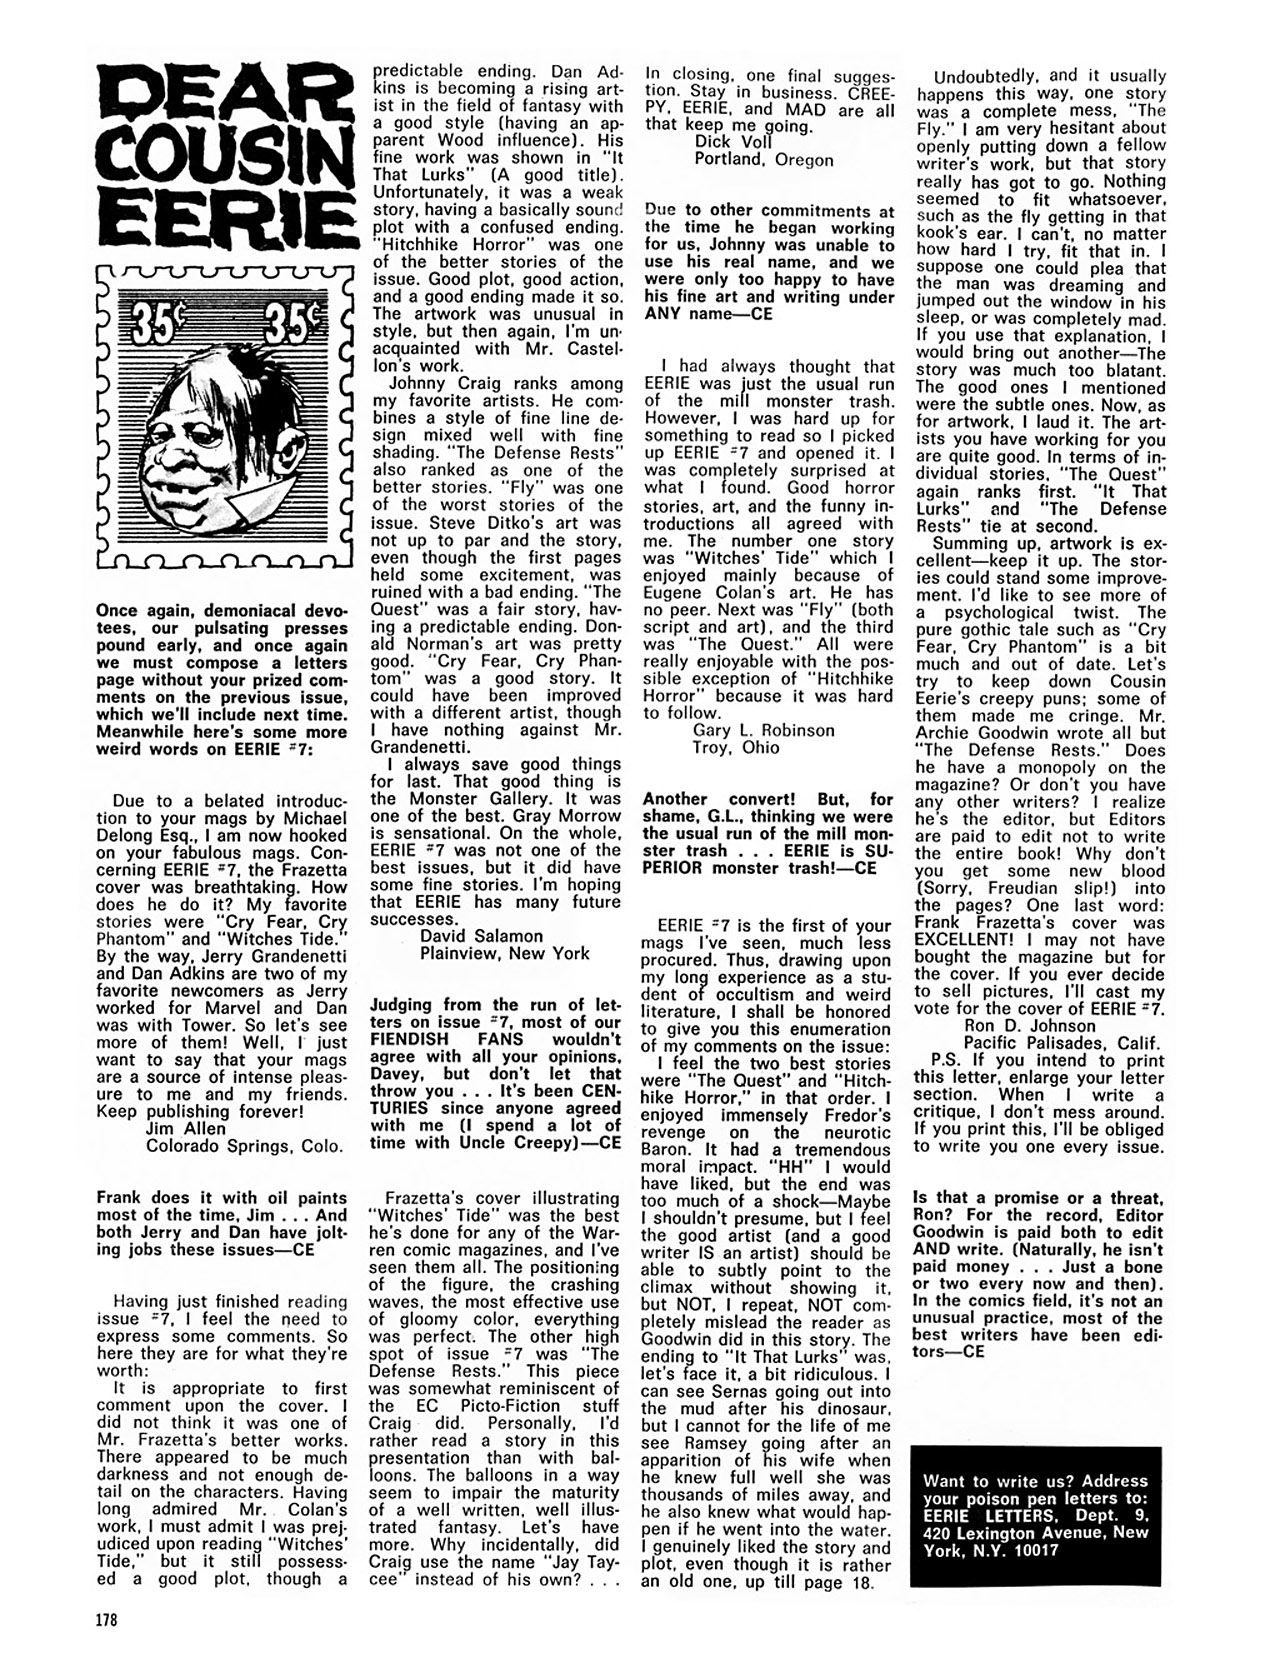 Read online Eerie Archives comic -  Issue # TPB 2 - 179